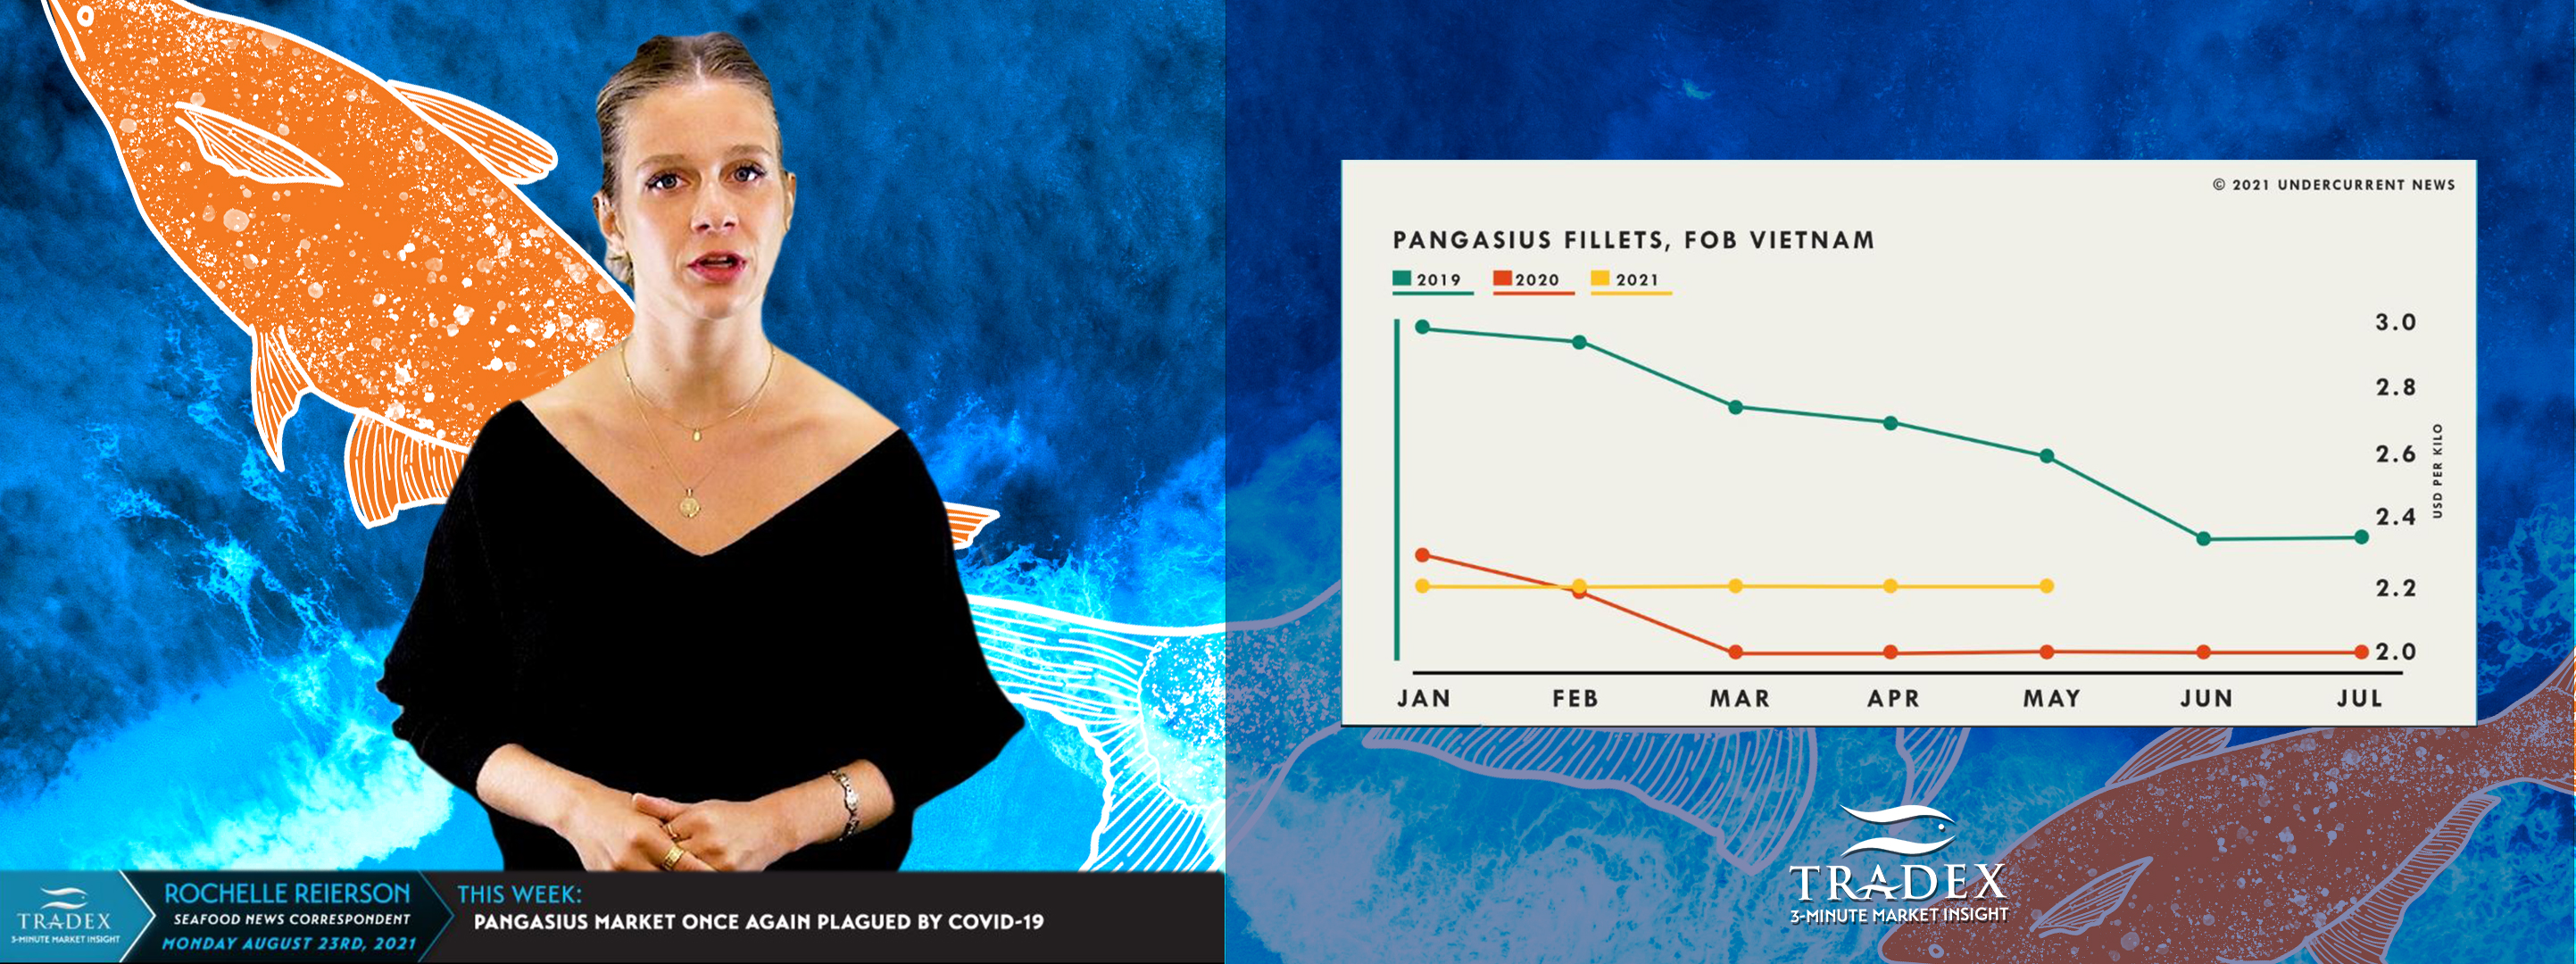 WE DO NOT ANTICIPATE ANY DOWNWARD PRICING FOR PANGASIUS ANYTIME SOON